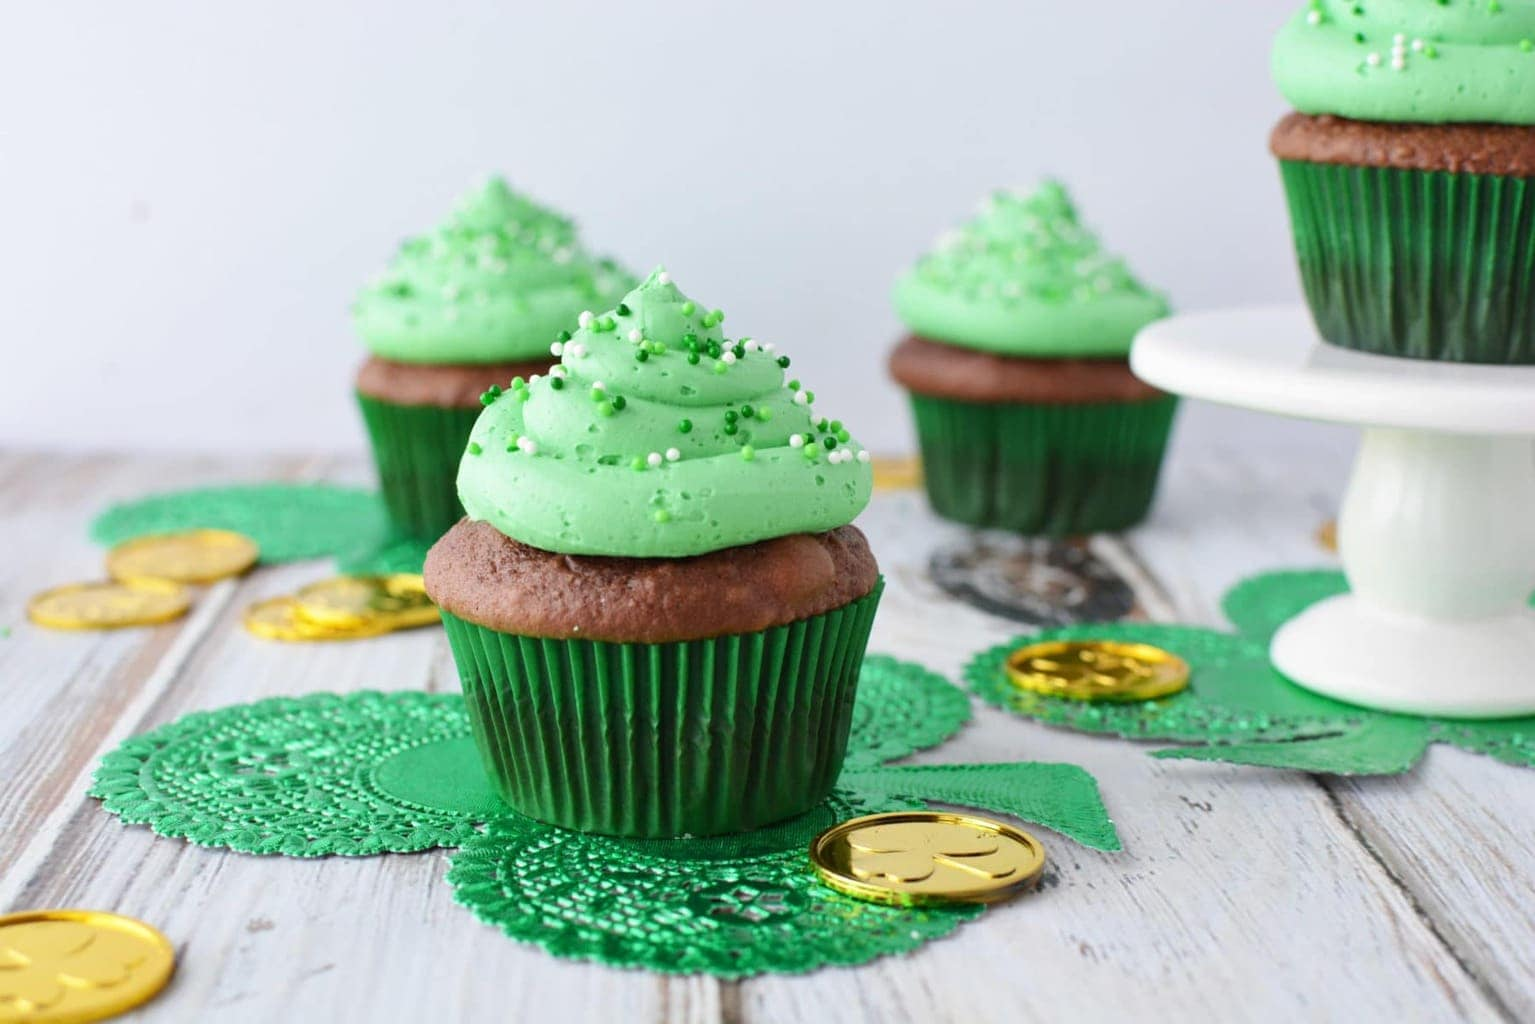 Irish Cream Chocolate Cupcakes Perfect for St. Patricks Day